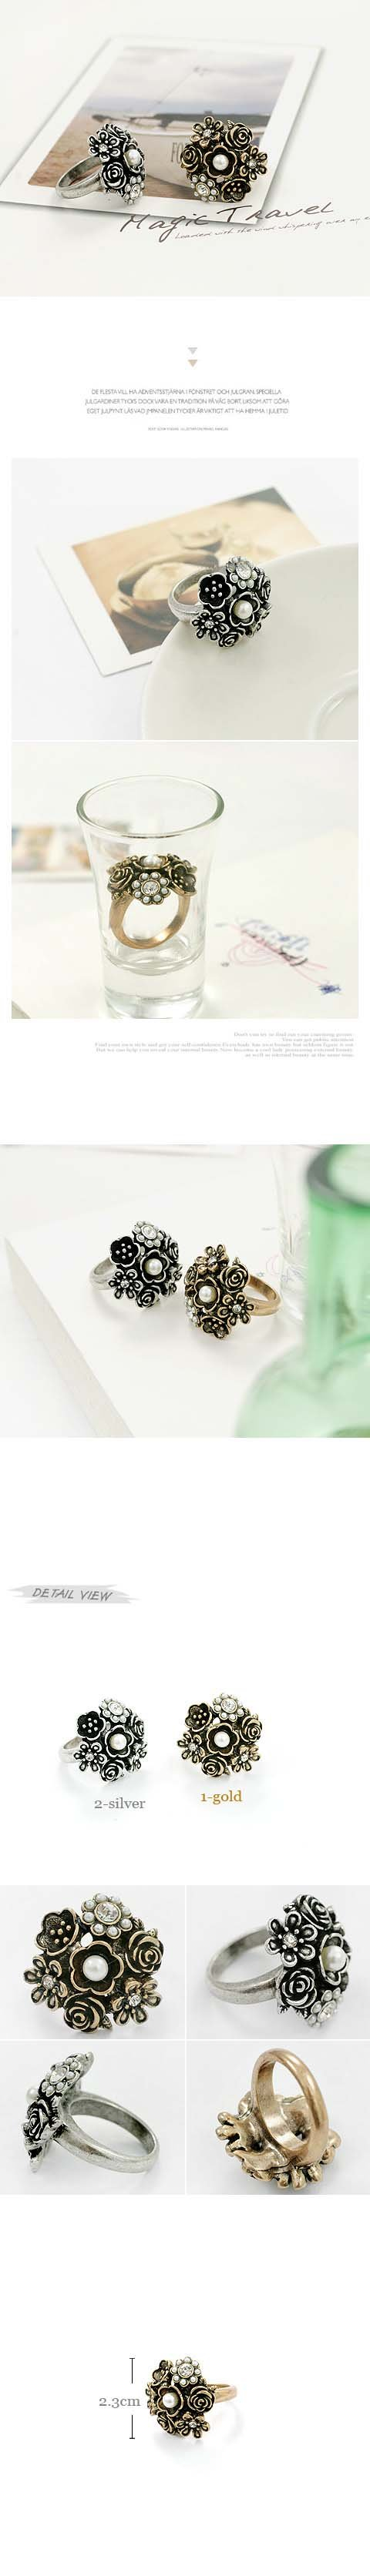 2012 fashion imitation jewelry flower ring+Free Shipping Retro flower ring,Retro ring wholesale #79111,79110,A077